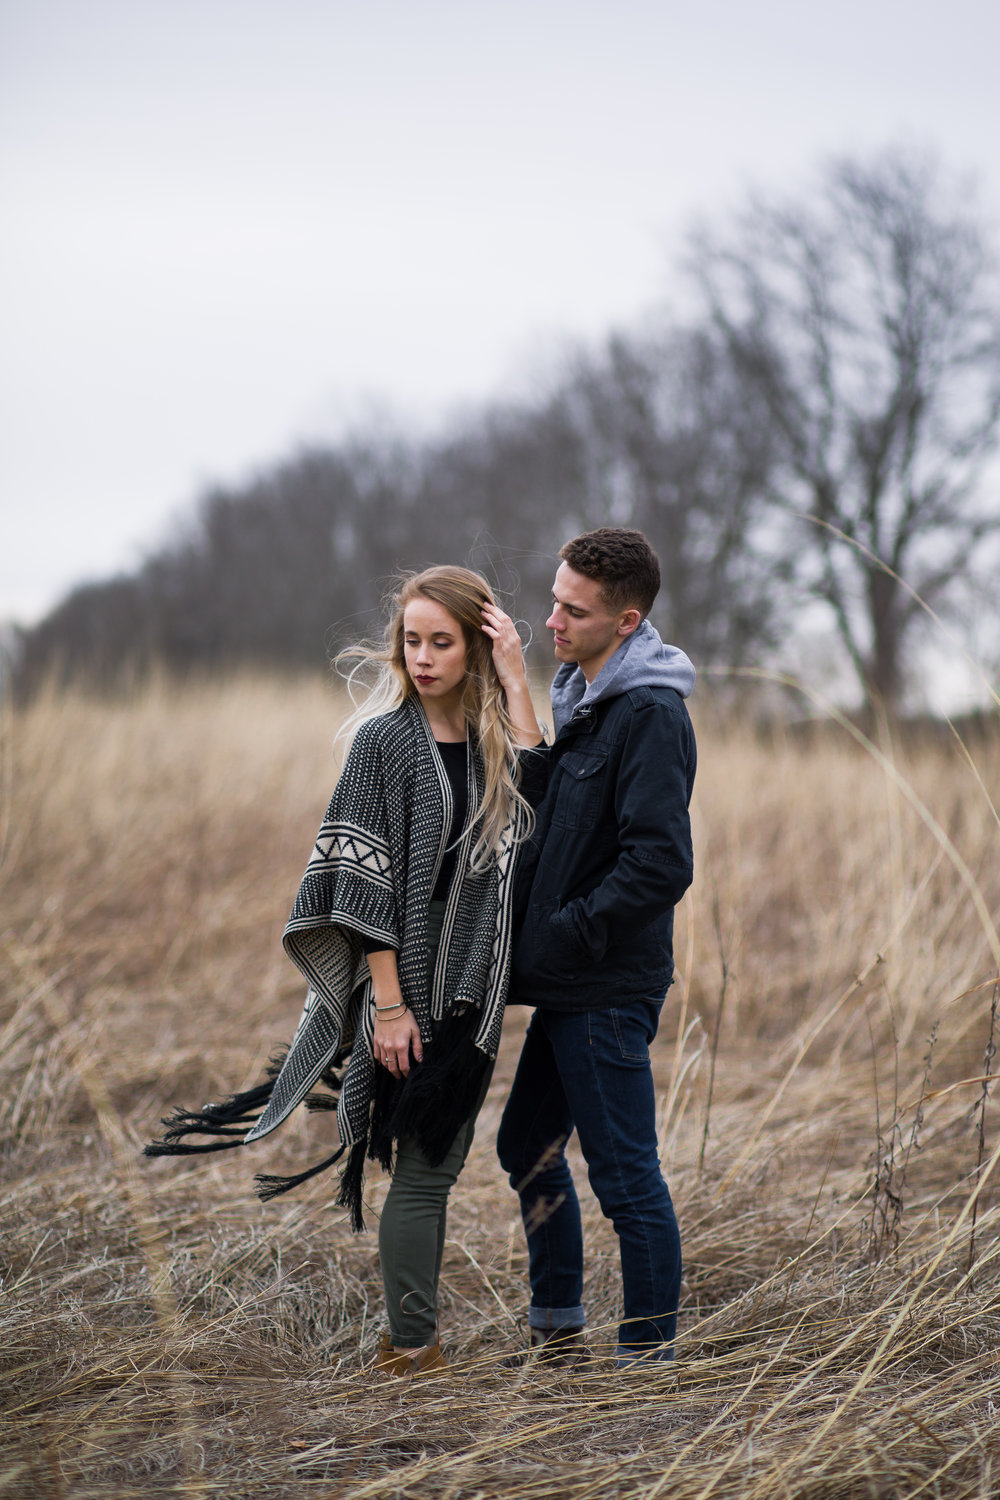 Shutter Up Studios | Engagement photographer in West Lafayette Indiana | Windy couples photo session in a field at Prophetstown State Park